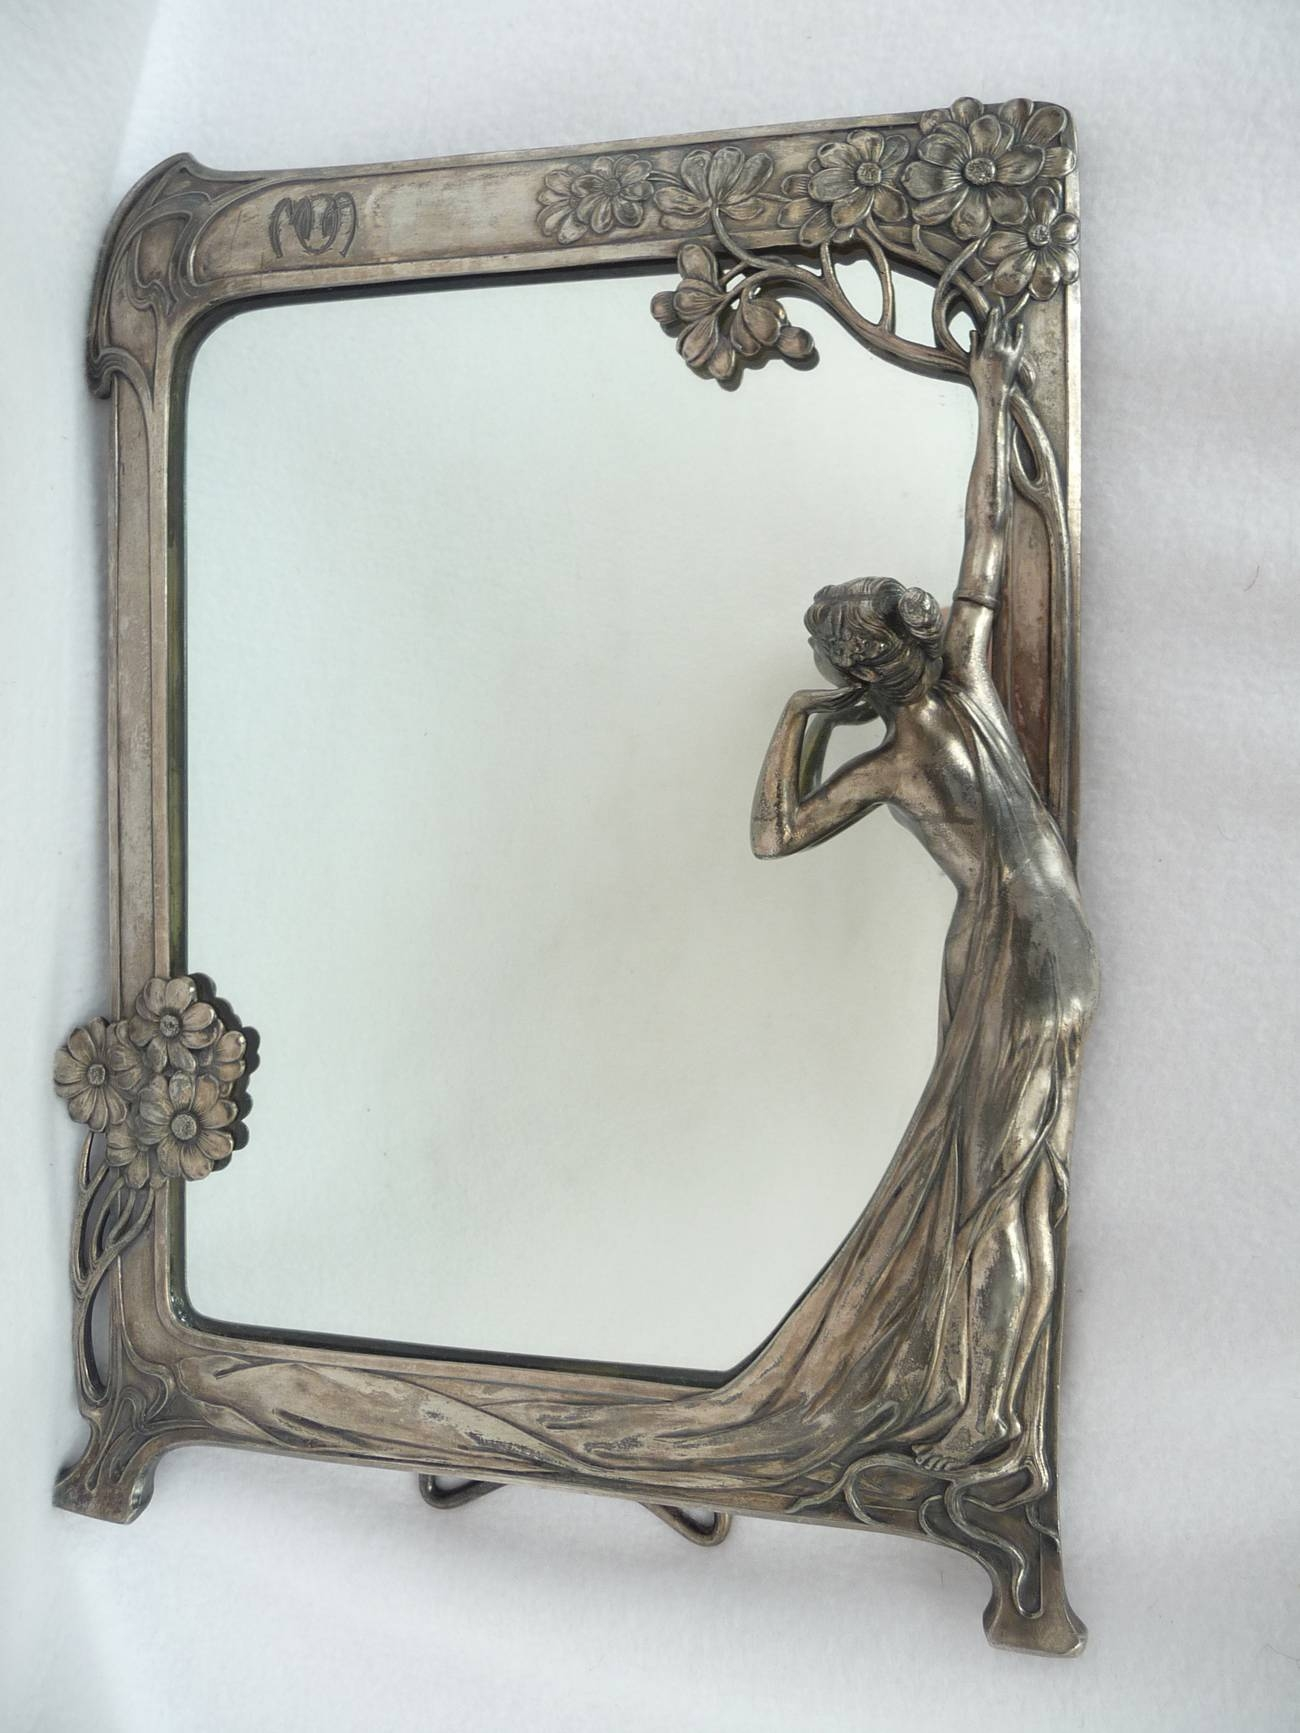 Tennants Auctioneers: An Art Nouveau Wmf Plated Figural Easel Mirror with regard to Art Nouveau Mirrors (Image 23 of 25)